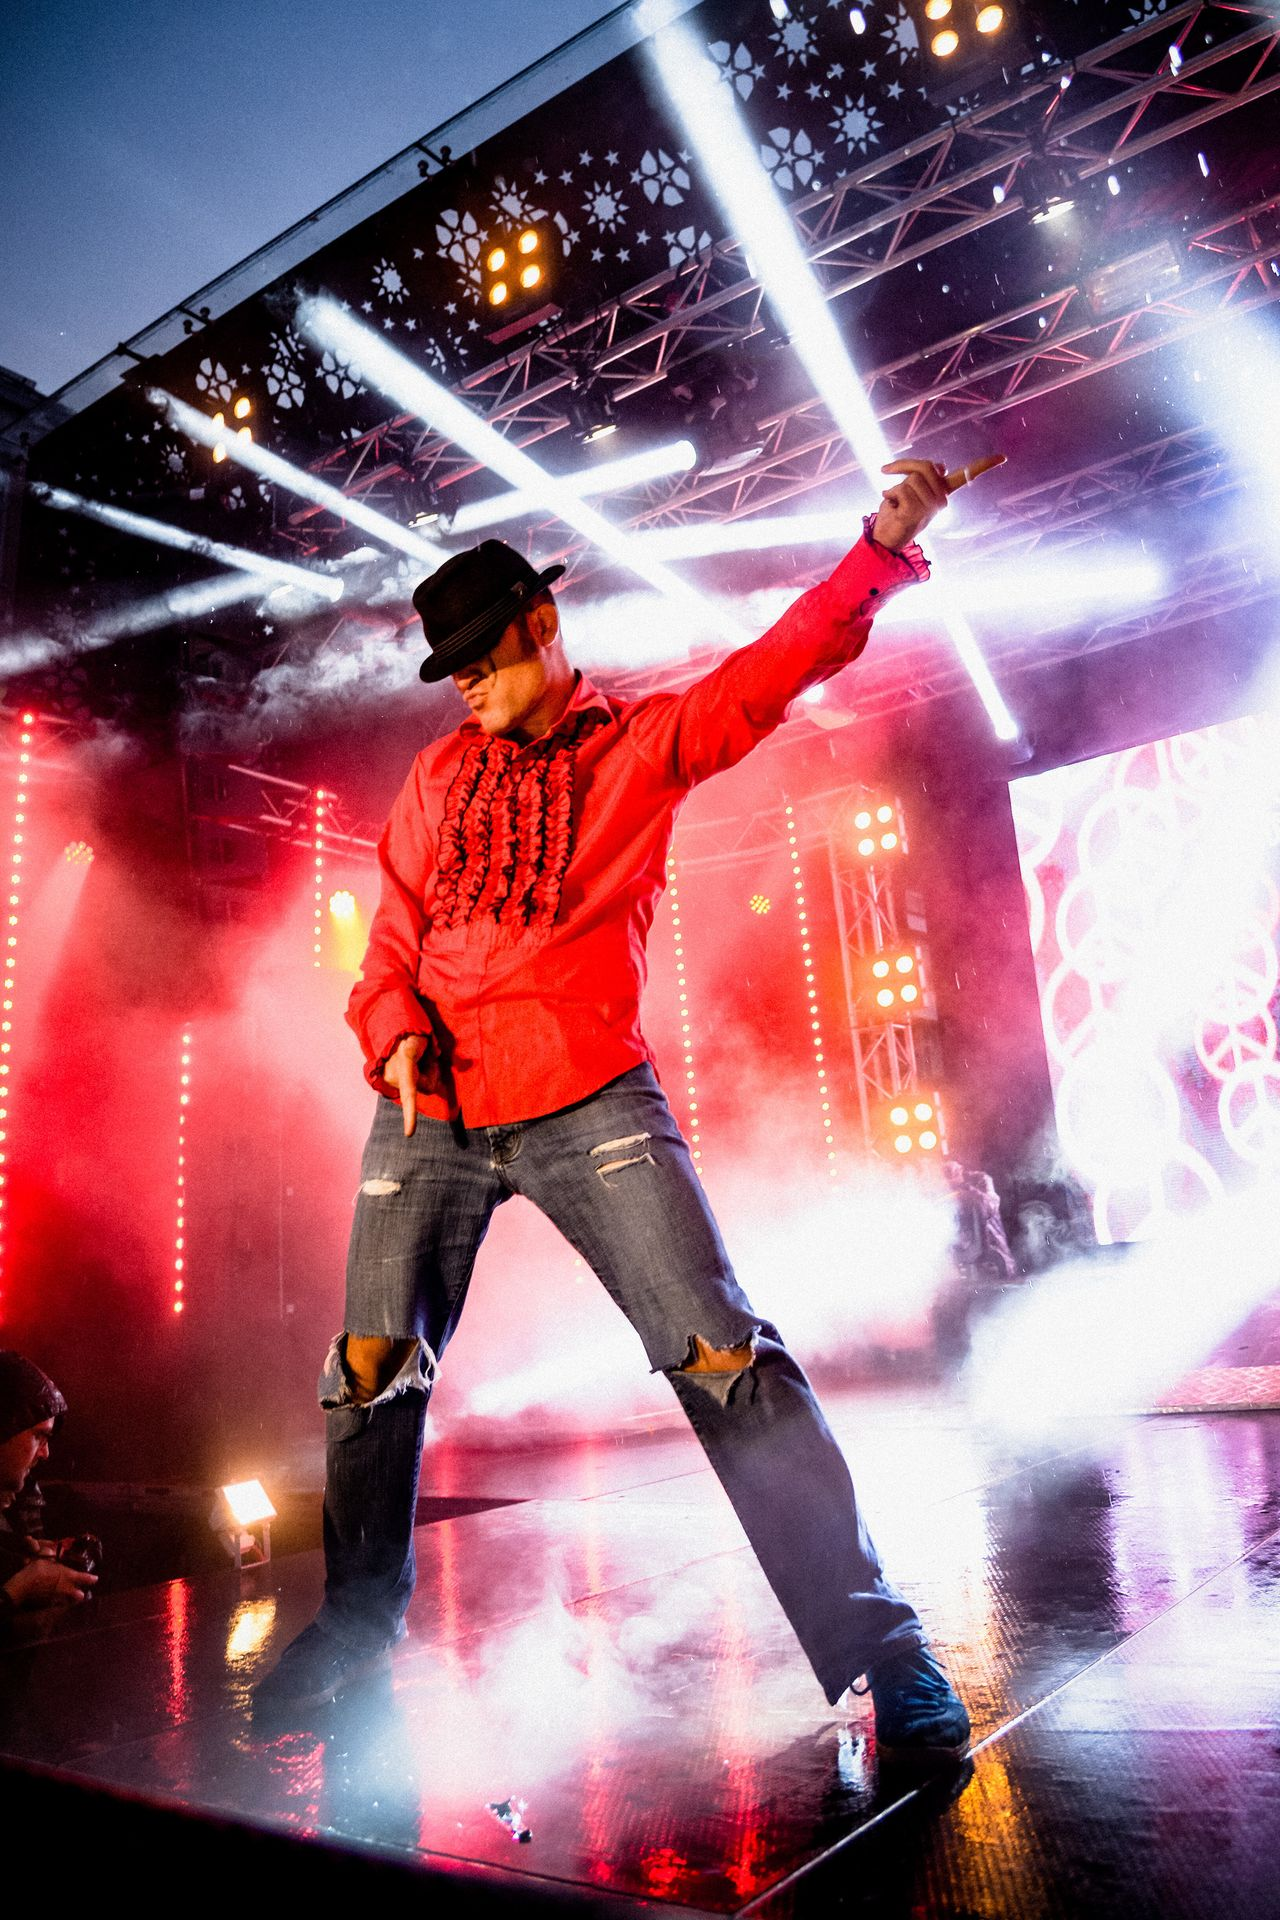 """<p><span style=""""color: #000000; font-family: Verdana, Arial, Helvetica, sans-serif; font-size: 11px; background-color: #ffffff;"""">Patrick """"Ehrwolf"""" Culek performs during the 2015 Air Guitar World Championships. </span></p>"""